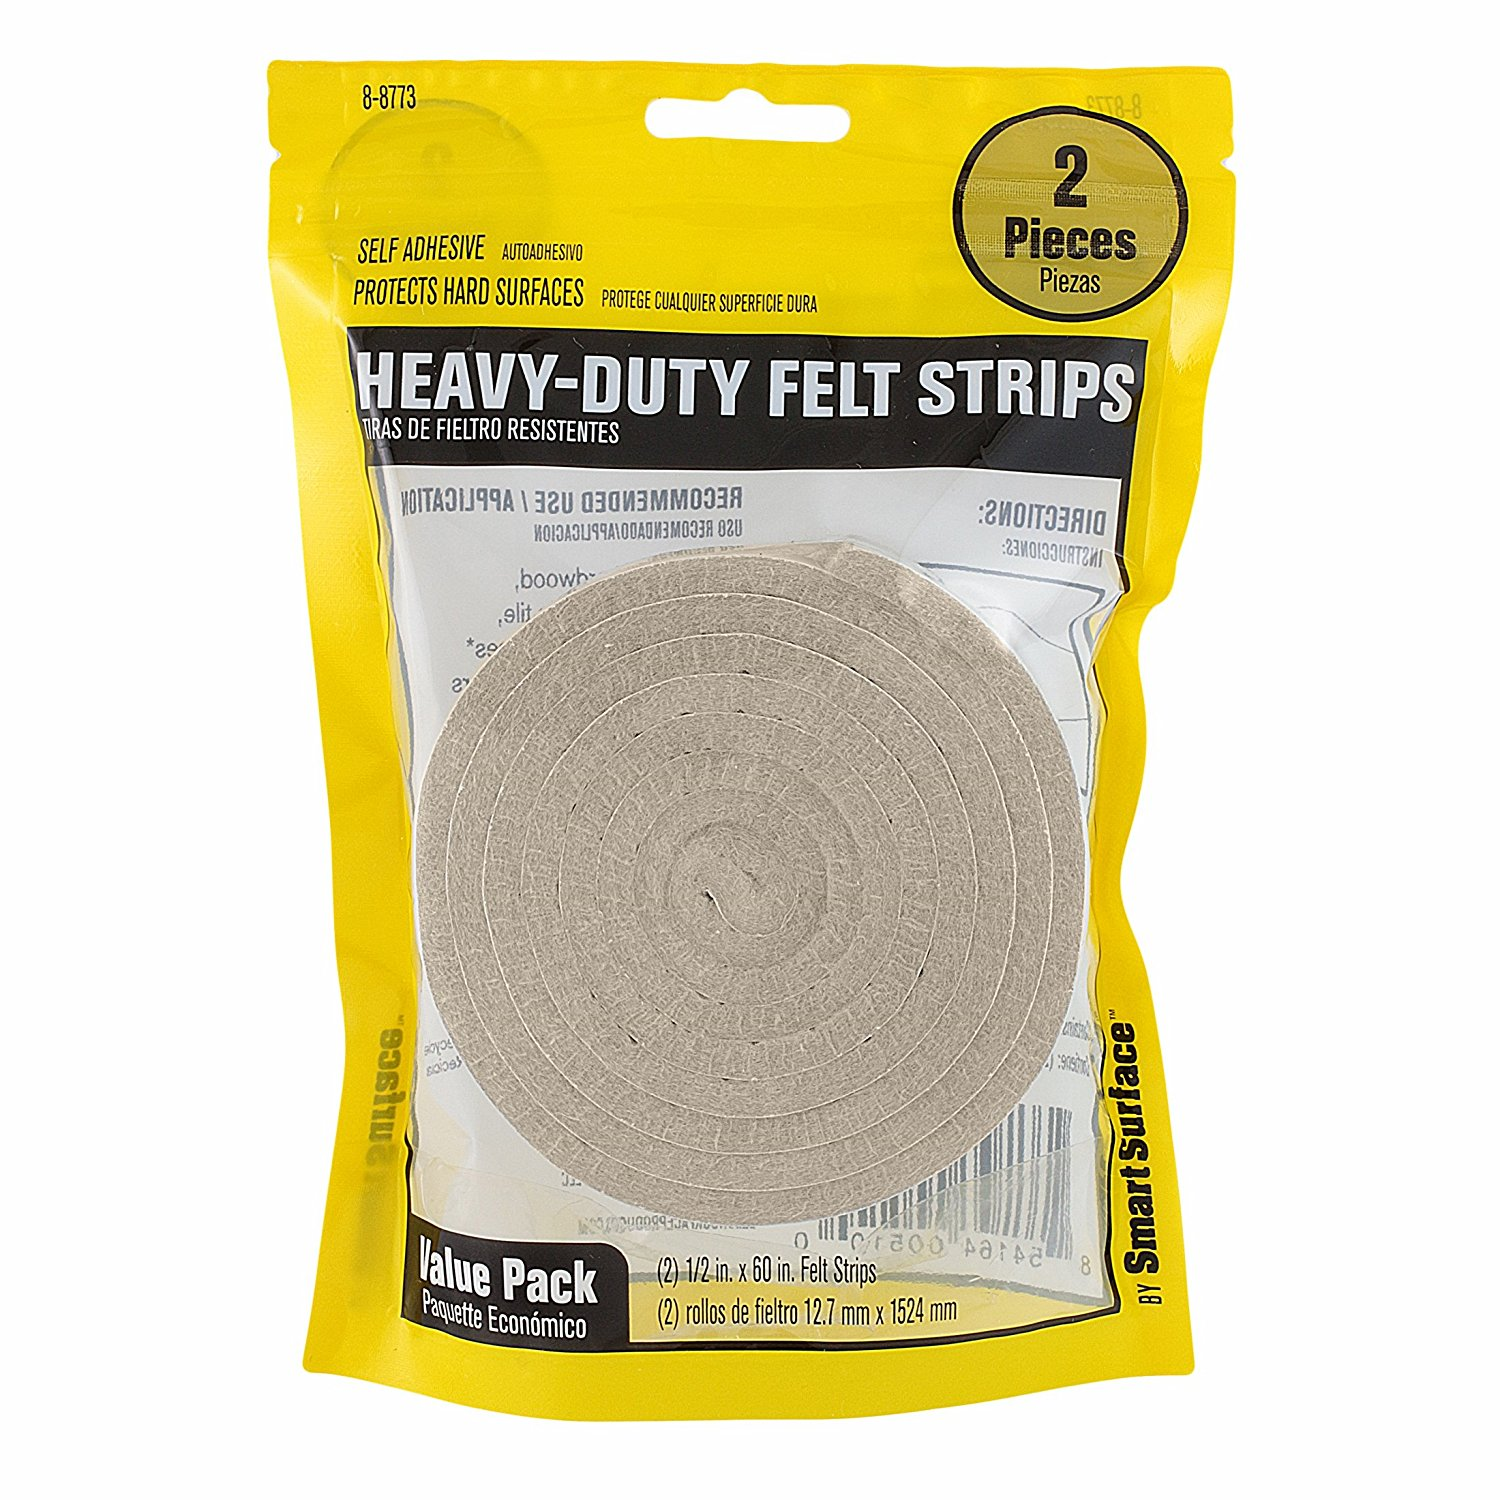 Heavy Duty 1 2 Inch By 60 Self Adhesive Furniture Felt Strips Oatmeal Piece Value Pack Smart Surface